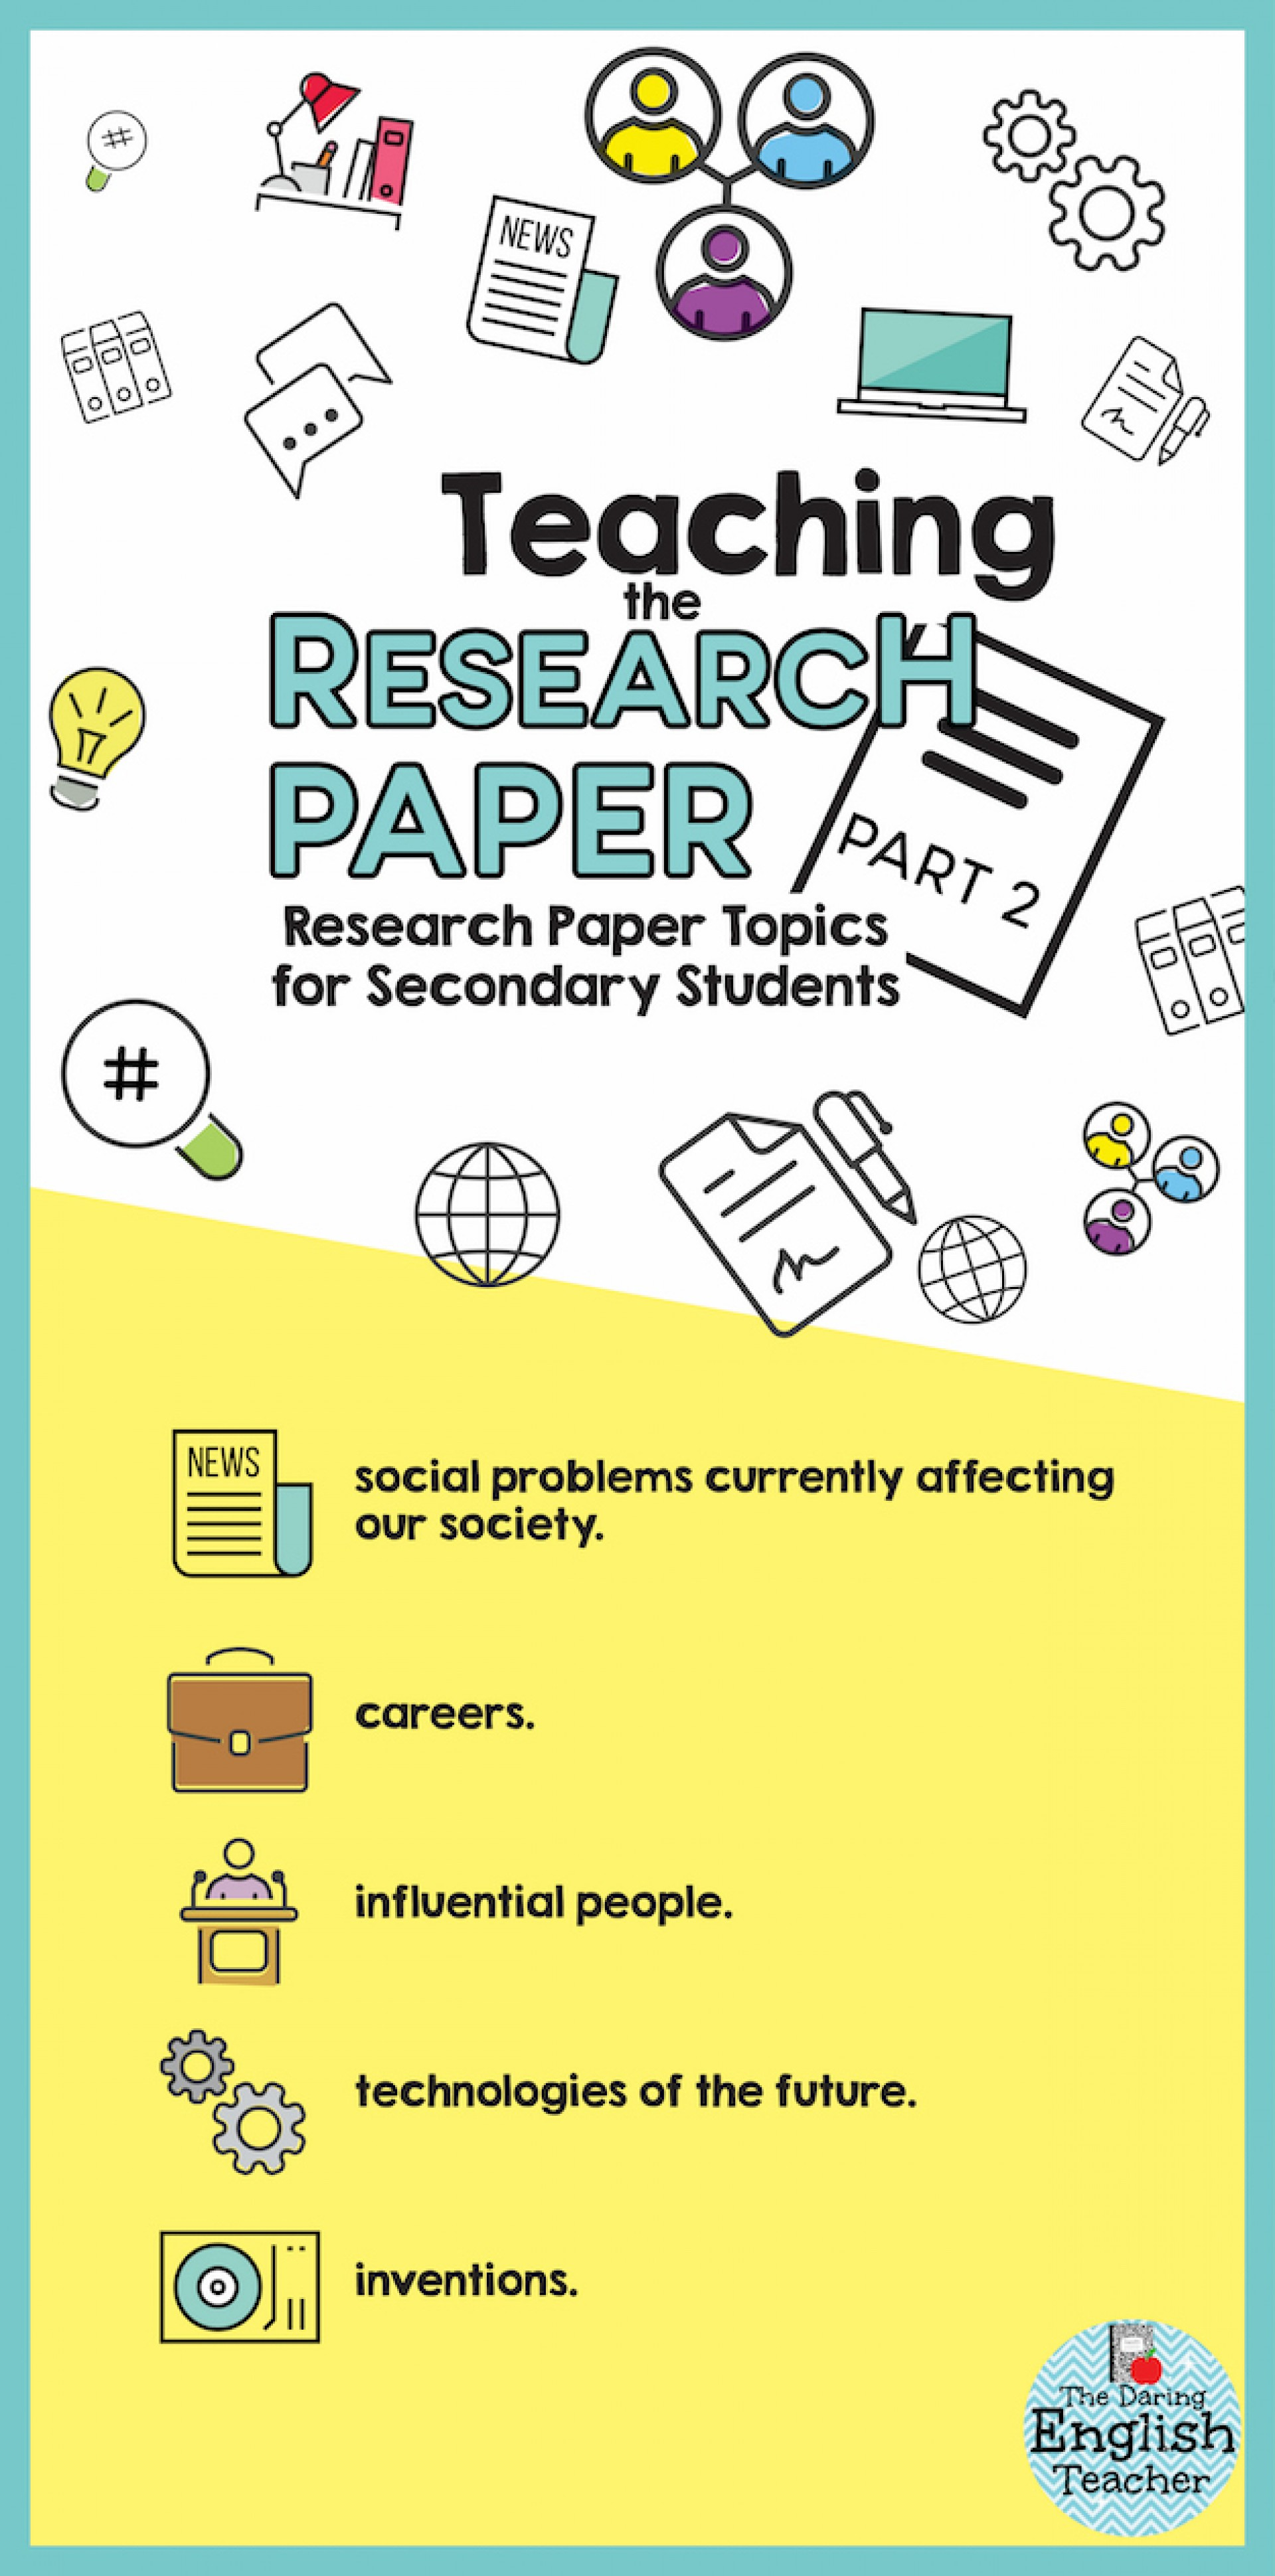 012 Research Paper Infographic2bp22b2 Topics High Incredible School Biology Science Seniors 1920